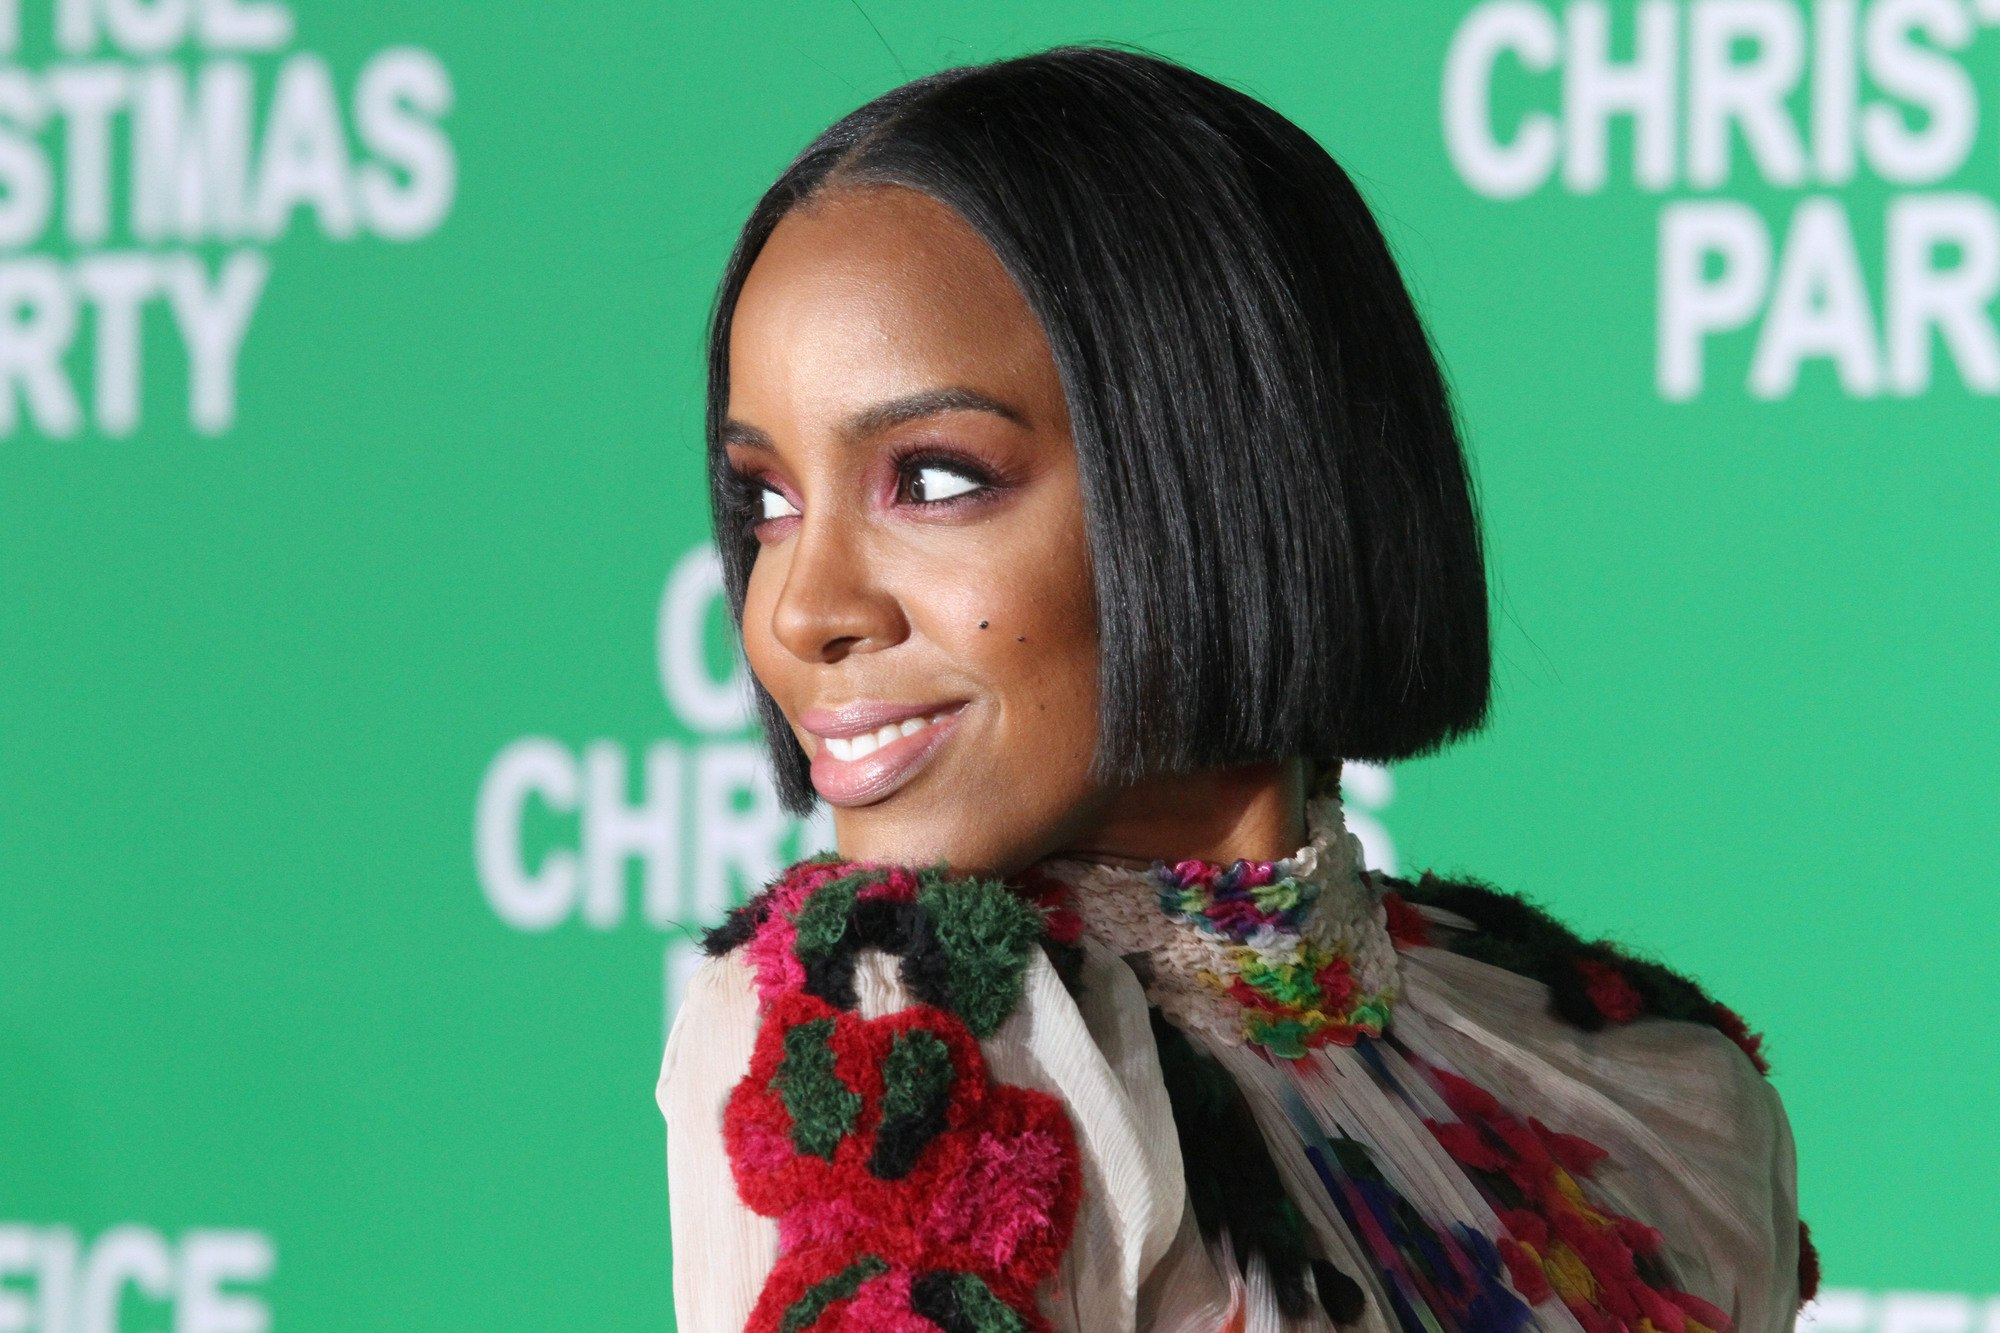 kelly rowland in a colourful dress with a short black bob haircut